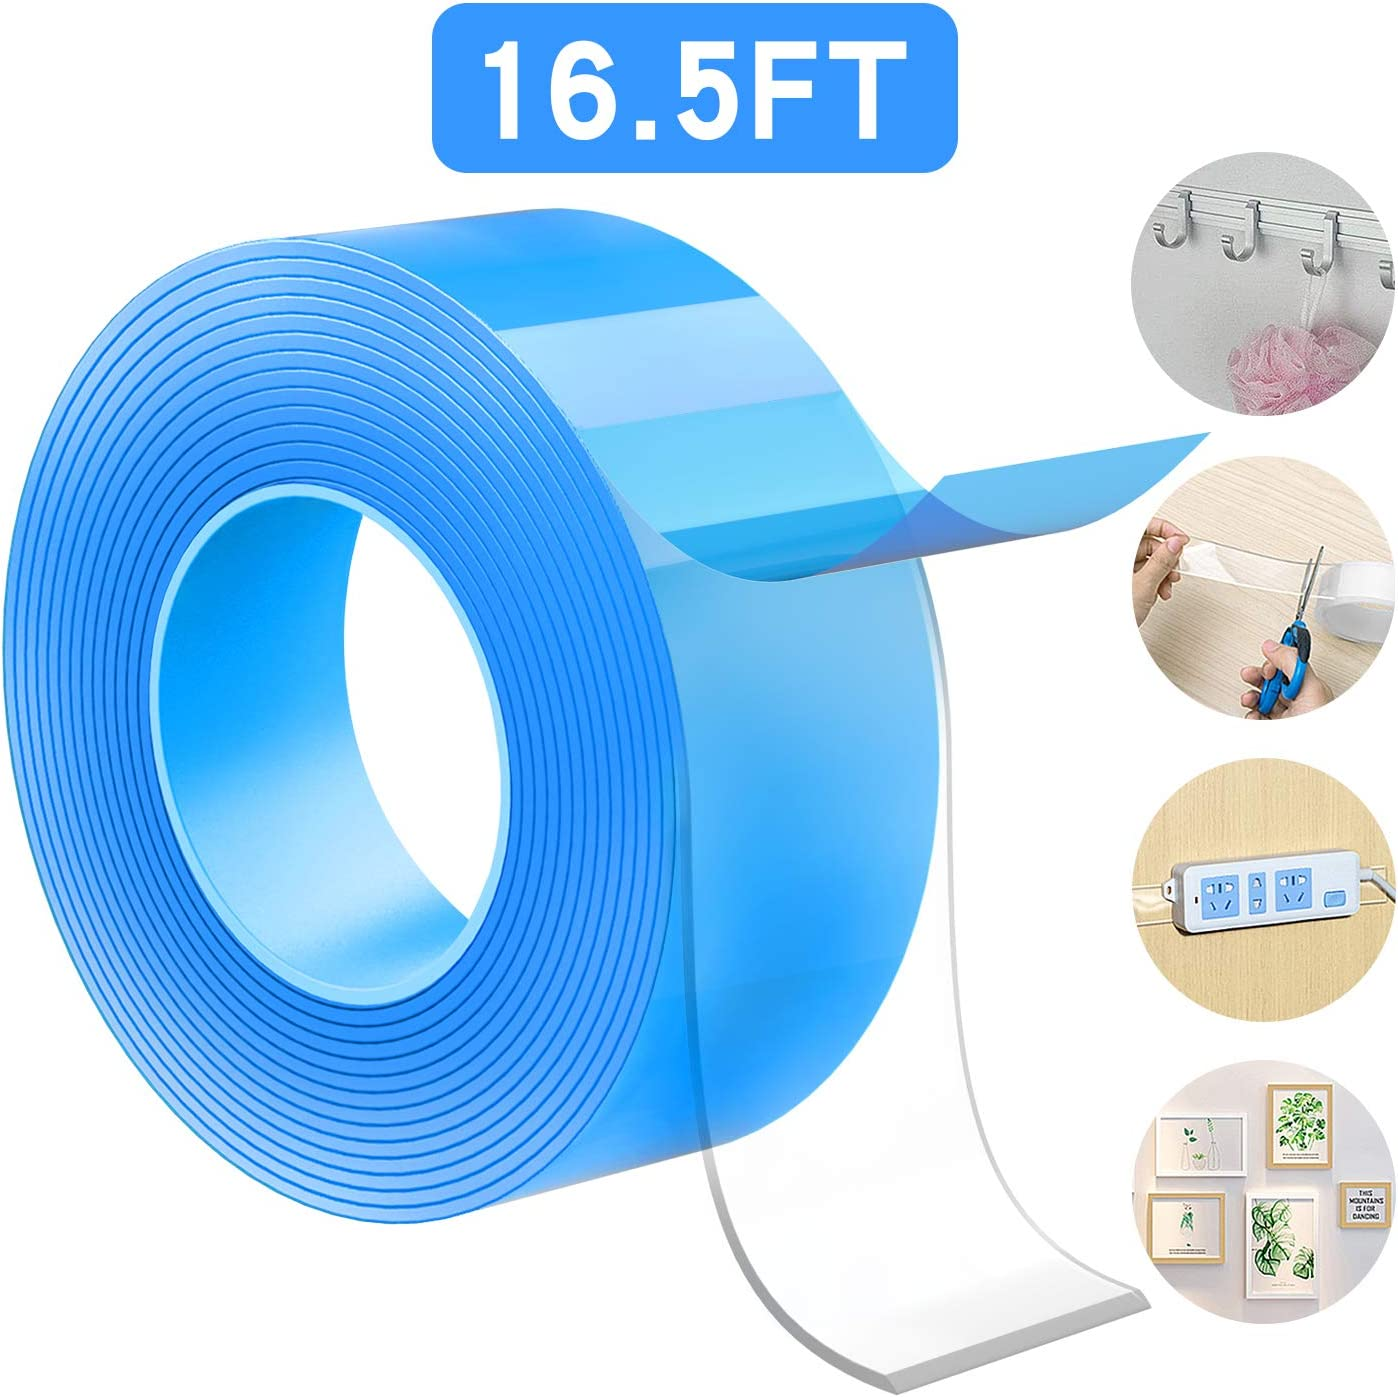 Meofia Nano Double Sided Tape Heavy Duty Mounting Tape Multipurpose Reusable Traceless Strong Adhesive Tape Removable Washable Stick Gel Grip Tape for Photos Carpet Mat Wall Kitchen Office